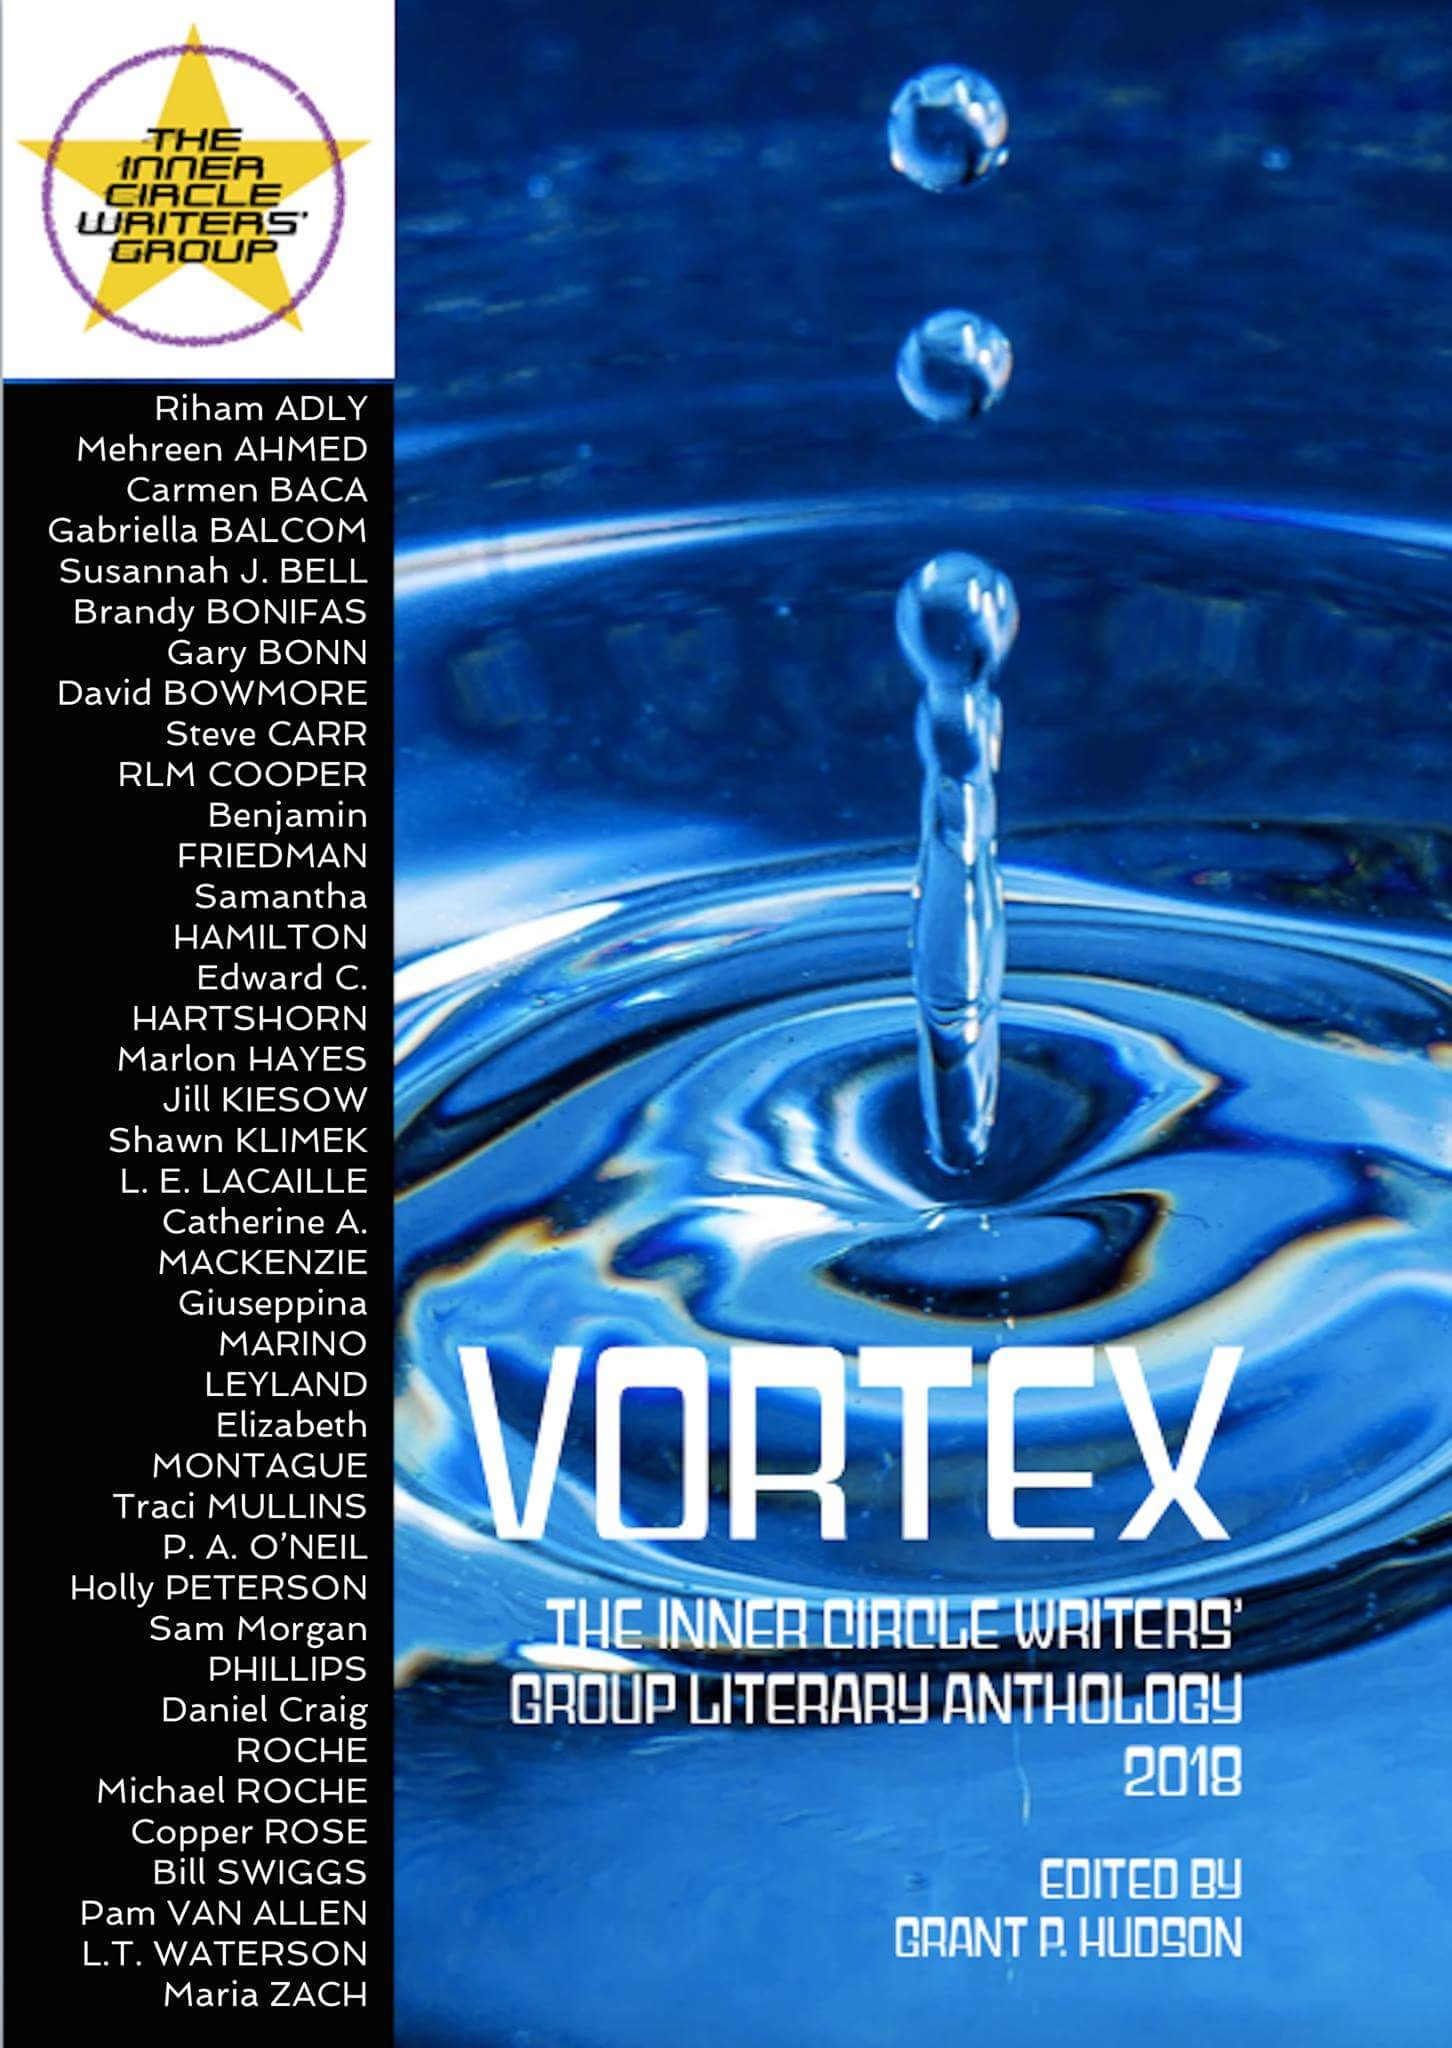 Vortex The Inner Circle Writers' Group Literary Anthology Cover